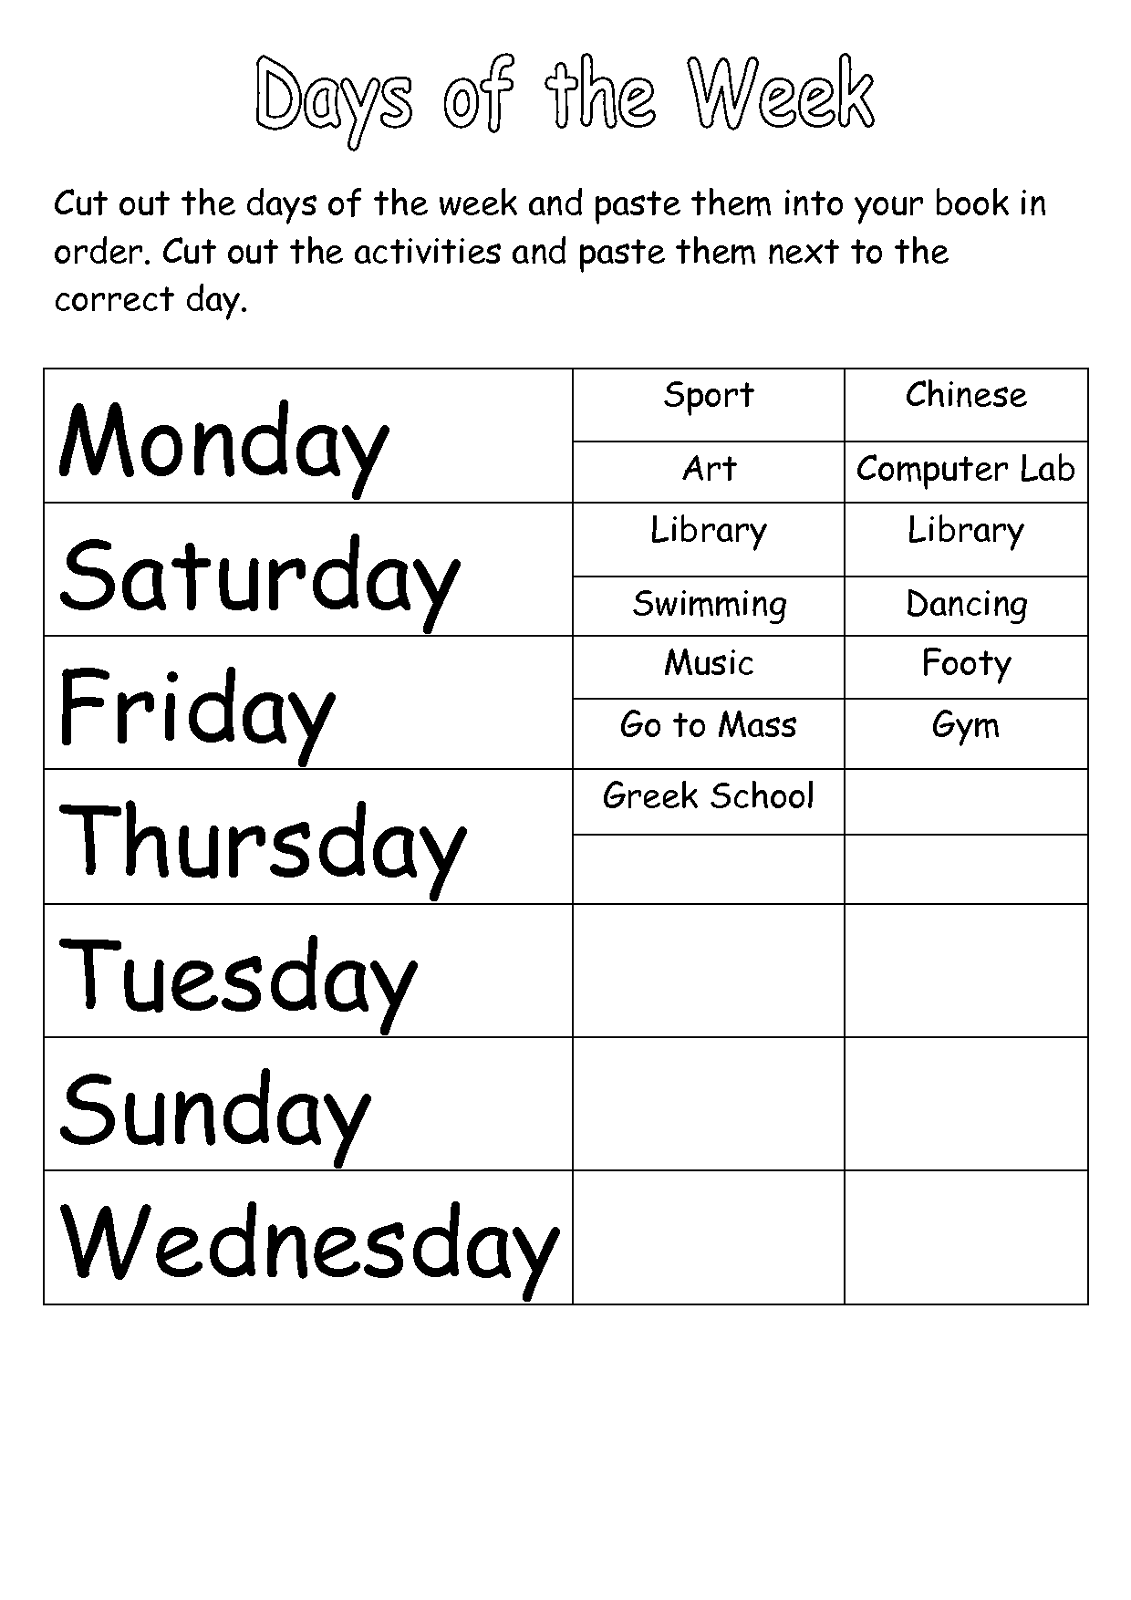 days-of-the-week-worksheet-for-kids